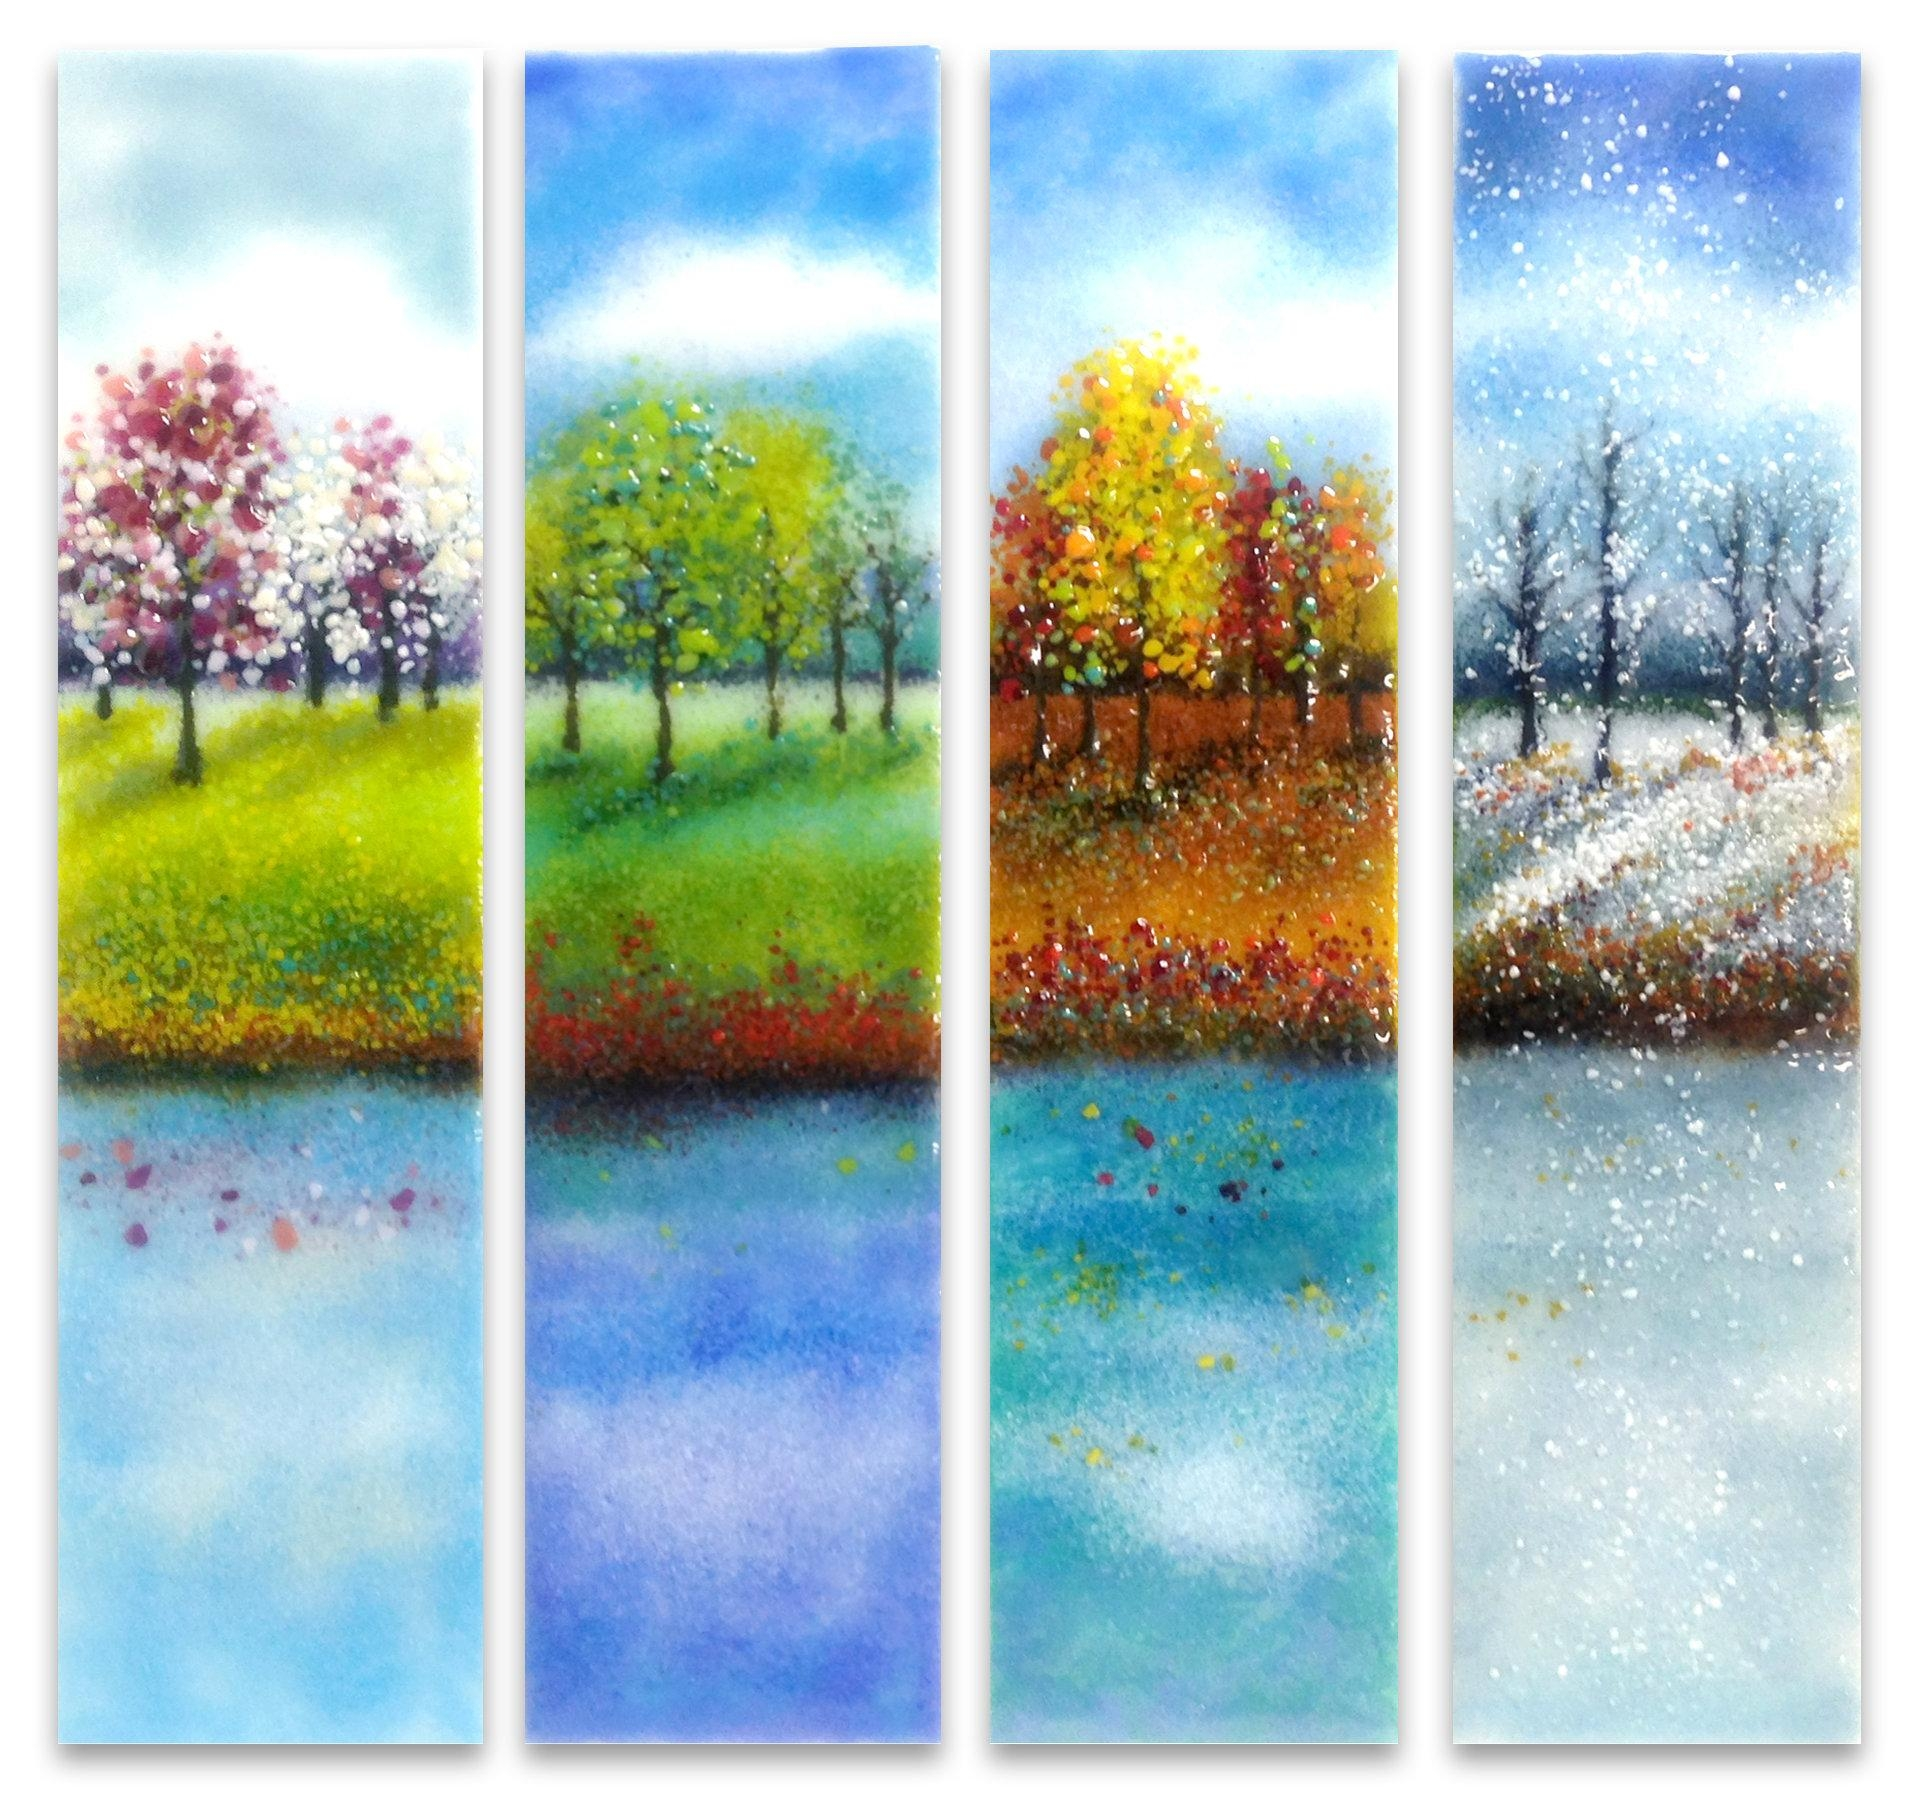 Glass Wall Art | Roselawnlutheran Throughout Glass Wall Art For Sale (Image 3 of 20)